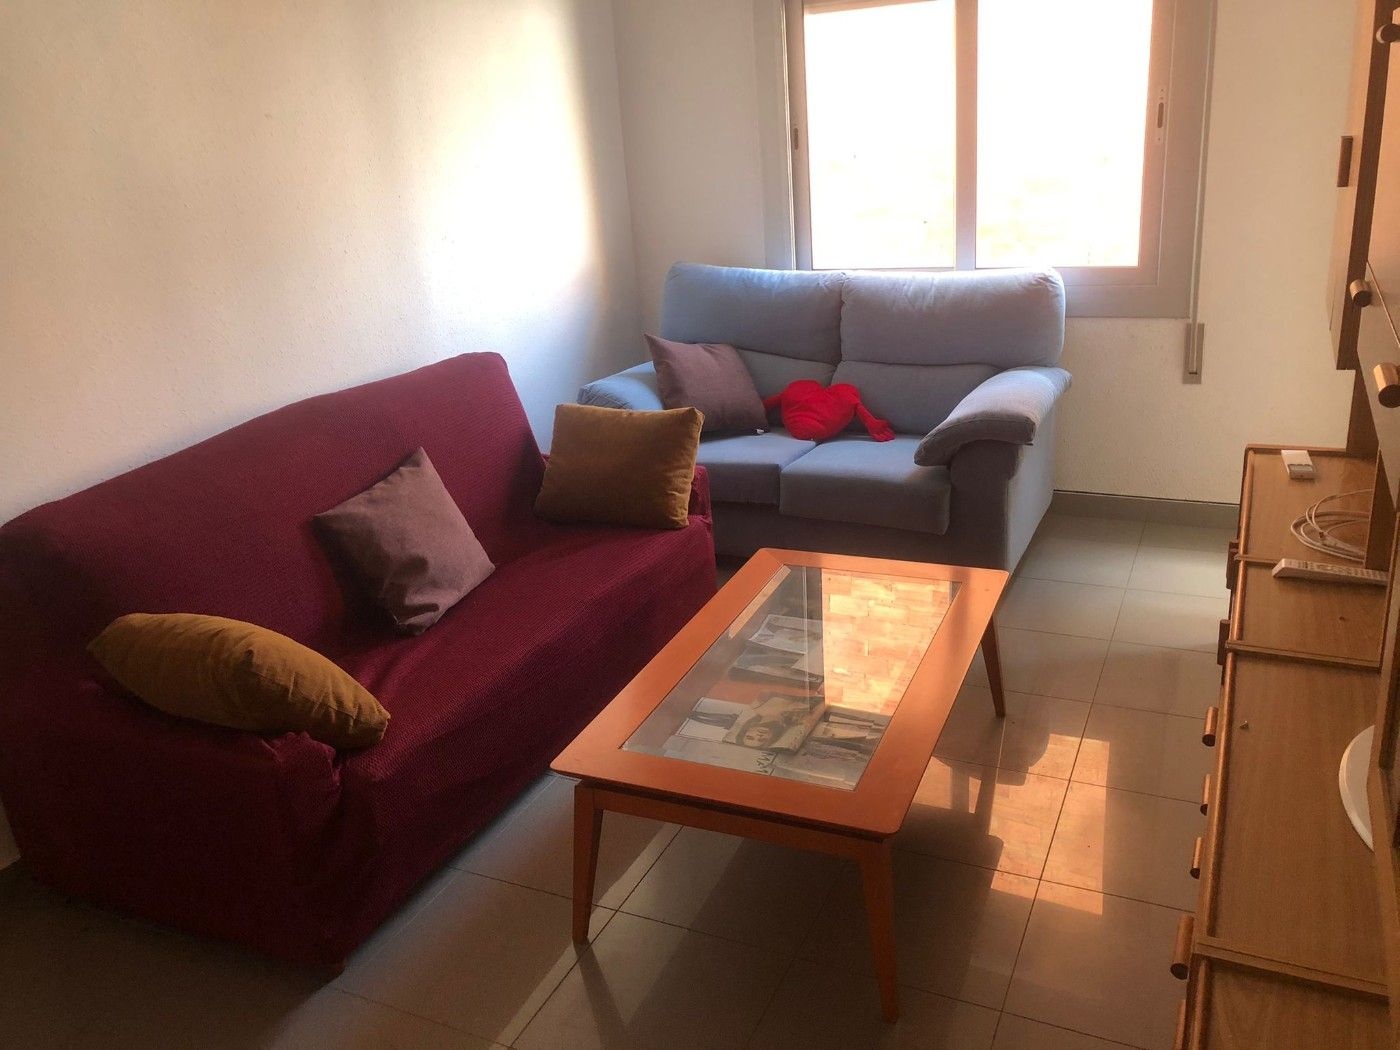 Location Appartement  Carrer miranda (la). Piso amueblado en z miranda